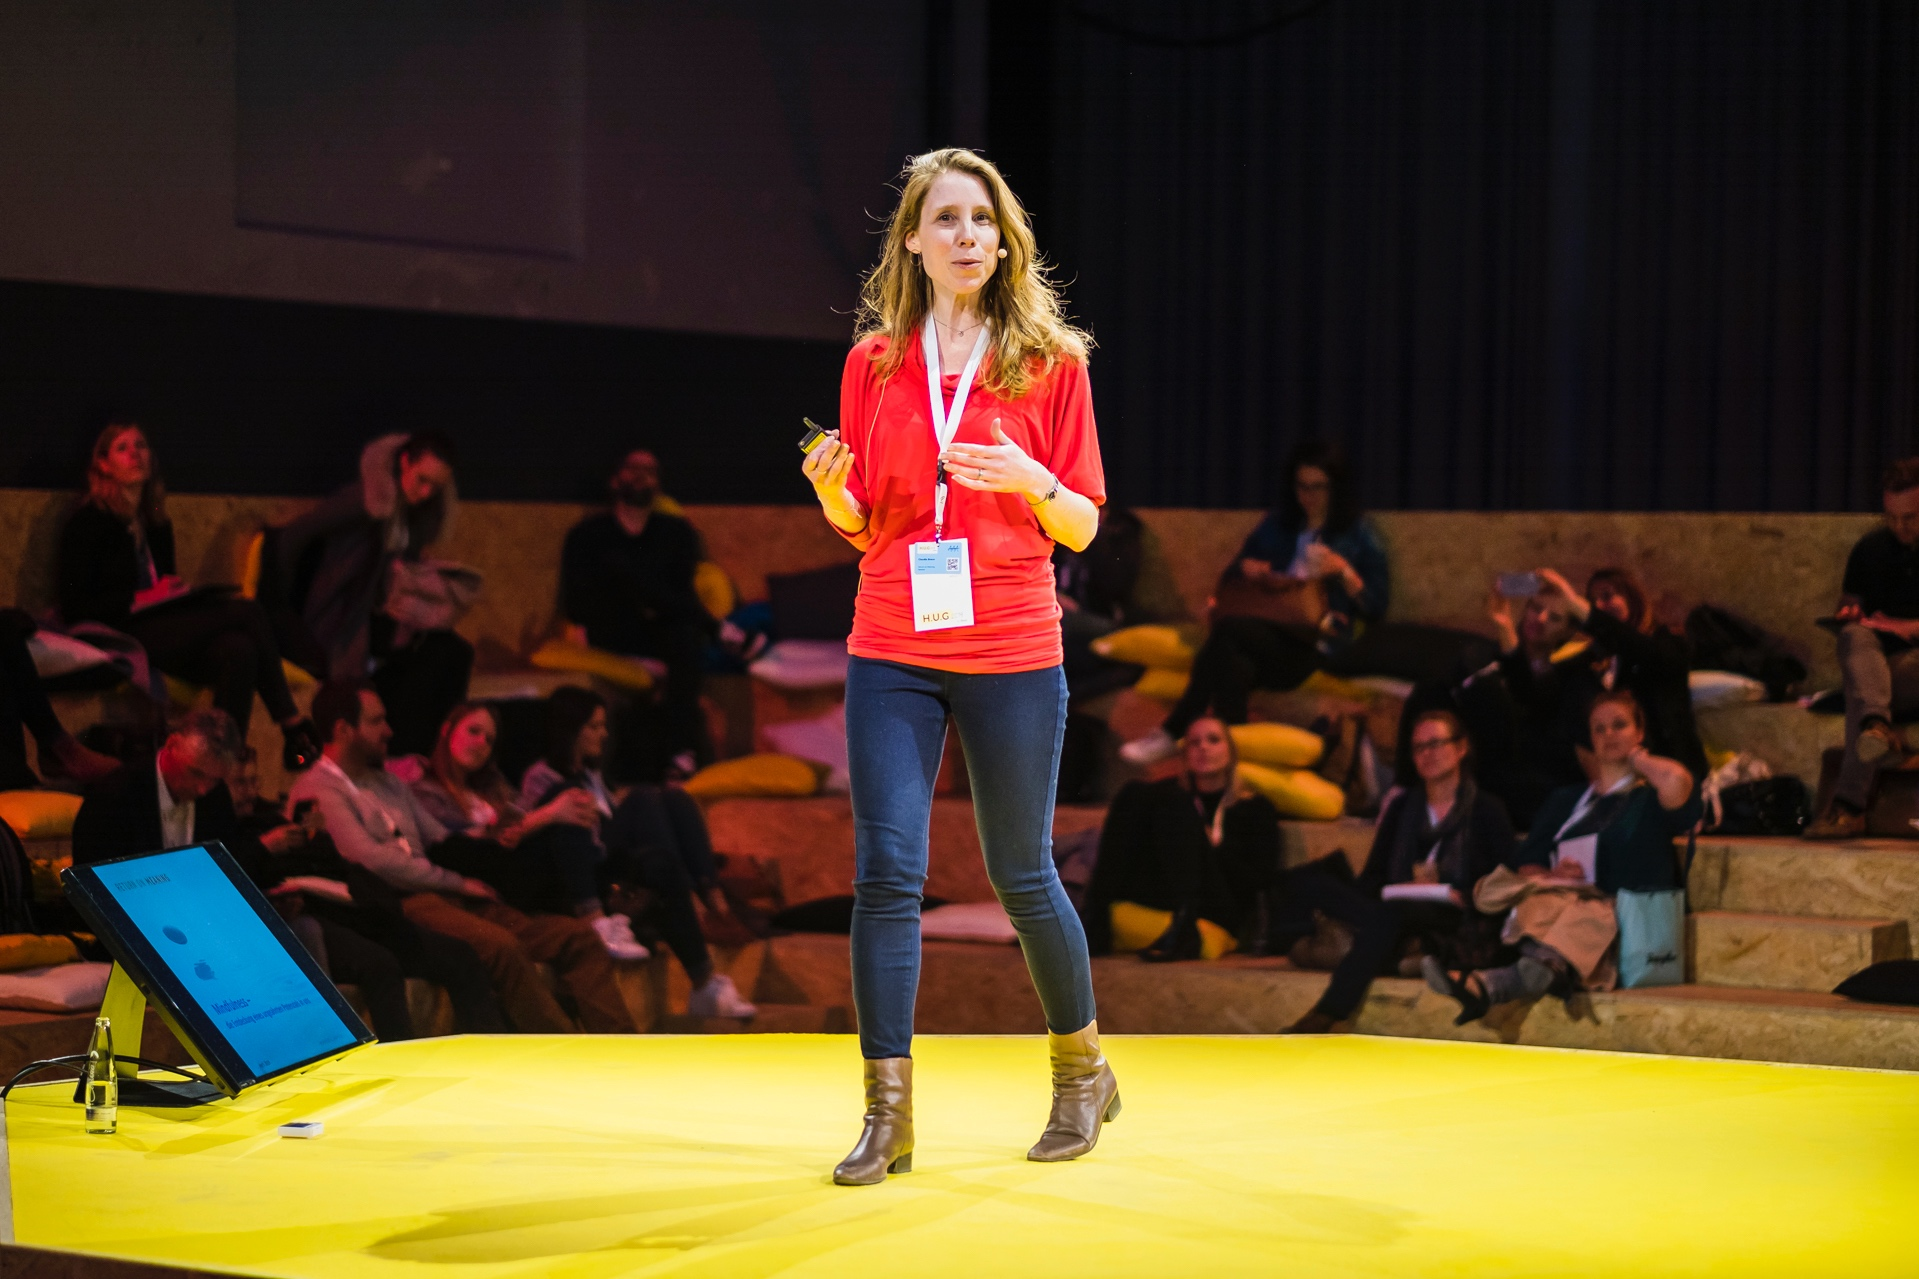 Mindfulness – a silver bullet in companies? - Claudia Braun on mindfulness in companies at the H.U.G. conference 2019 in Munich